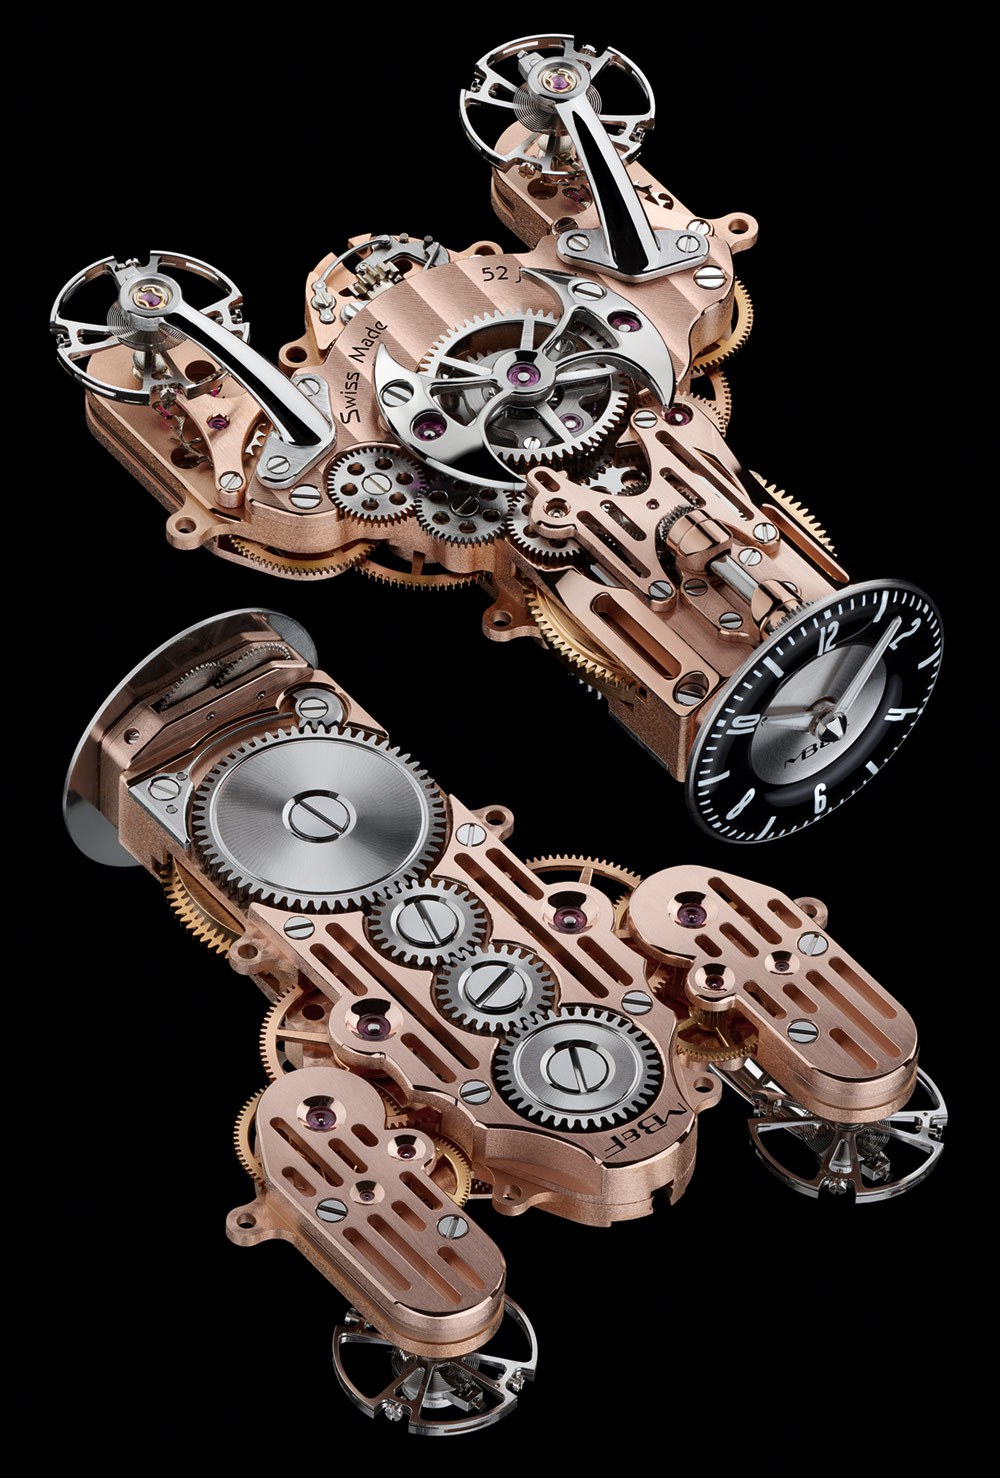 mbf-horological-machine-no-9-hm9-flow-air-road-ablogtowatch-13.jpg